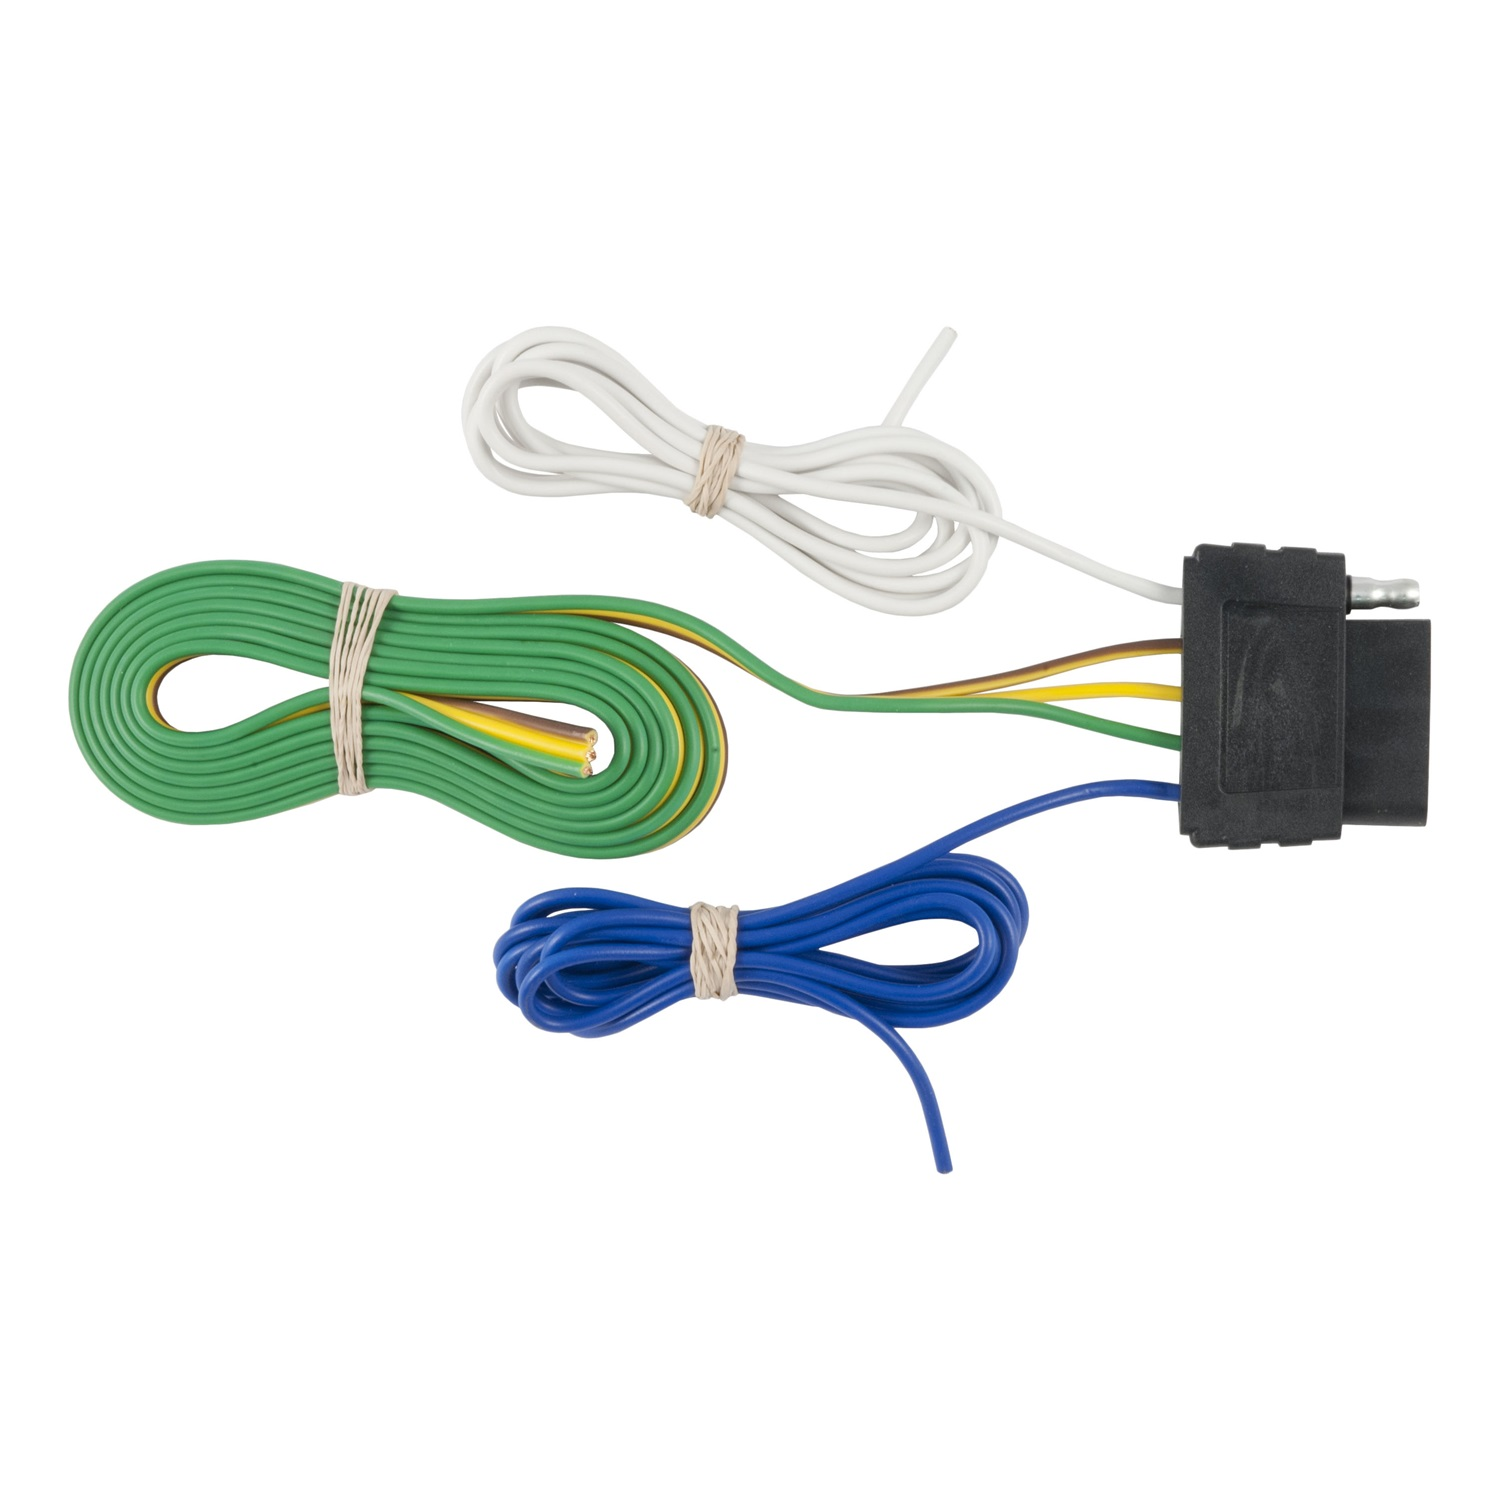 Trailer With Surge Brake Wiring Free Diagram For You A Boat Brakes And Lights Curt Manufacturing 58531 5 Way Flat Bonded Light Switch Controller